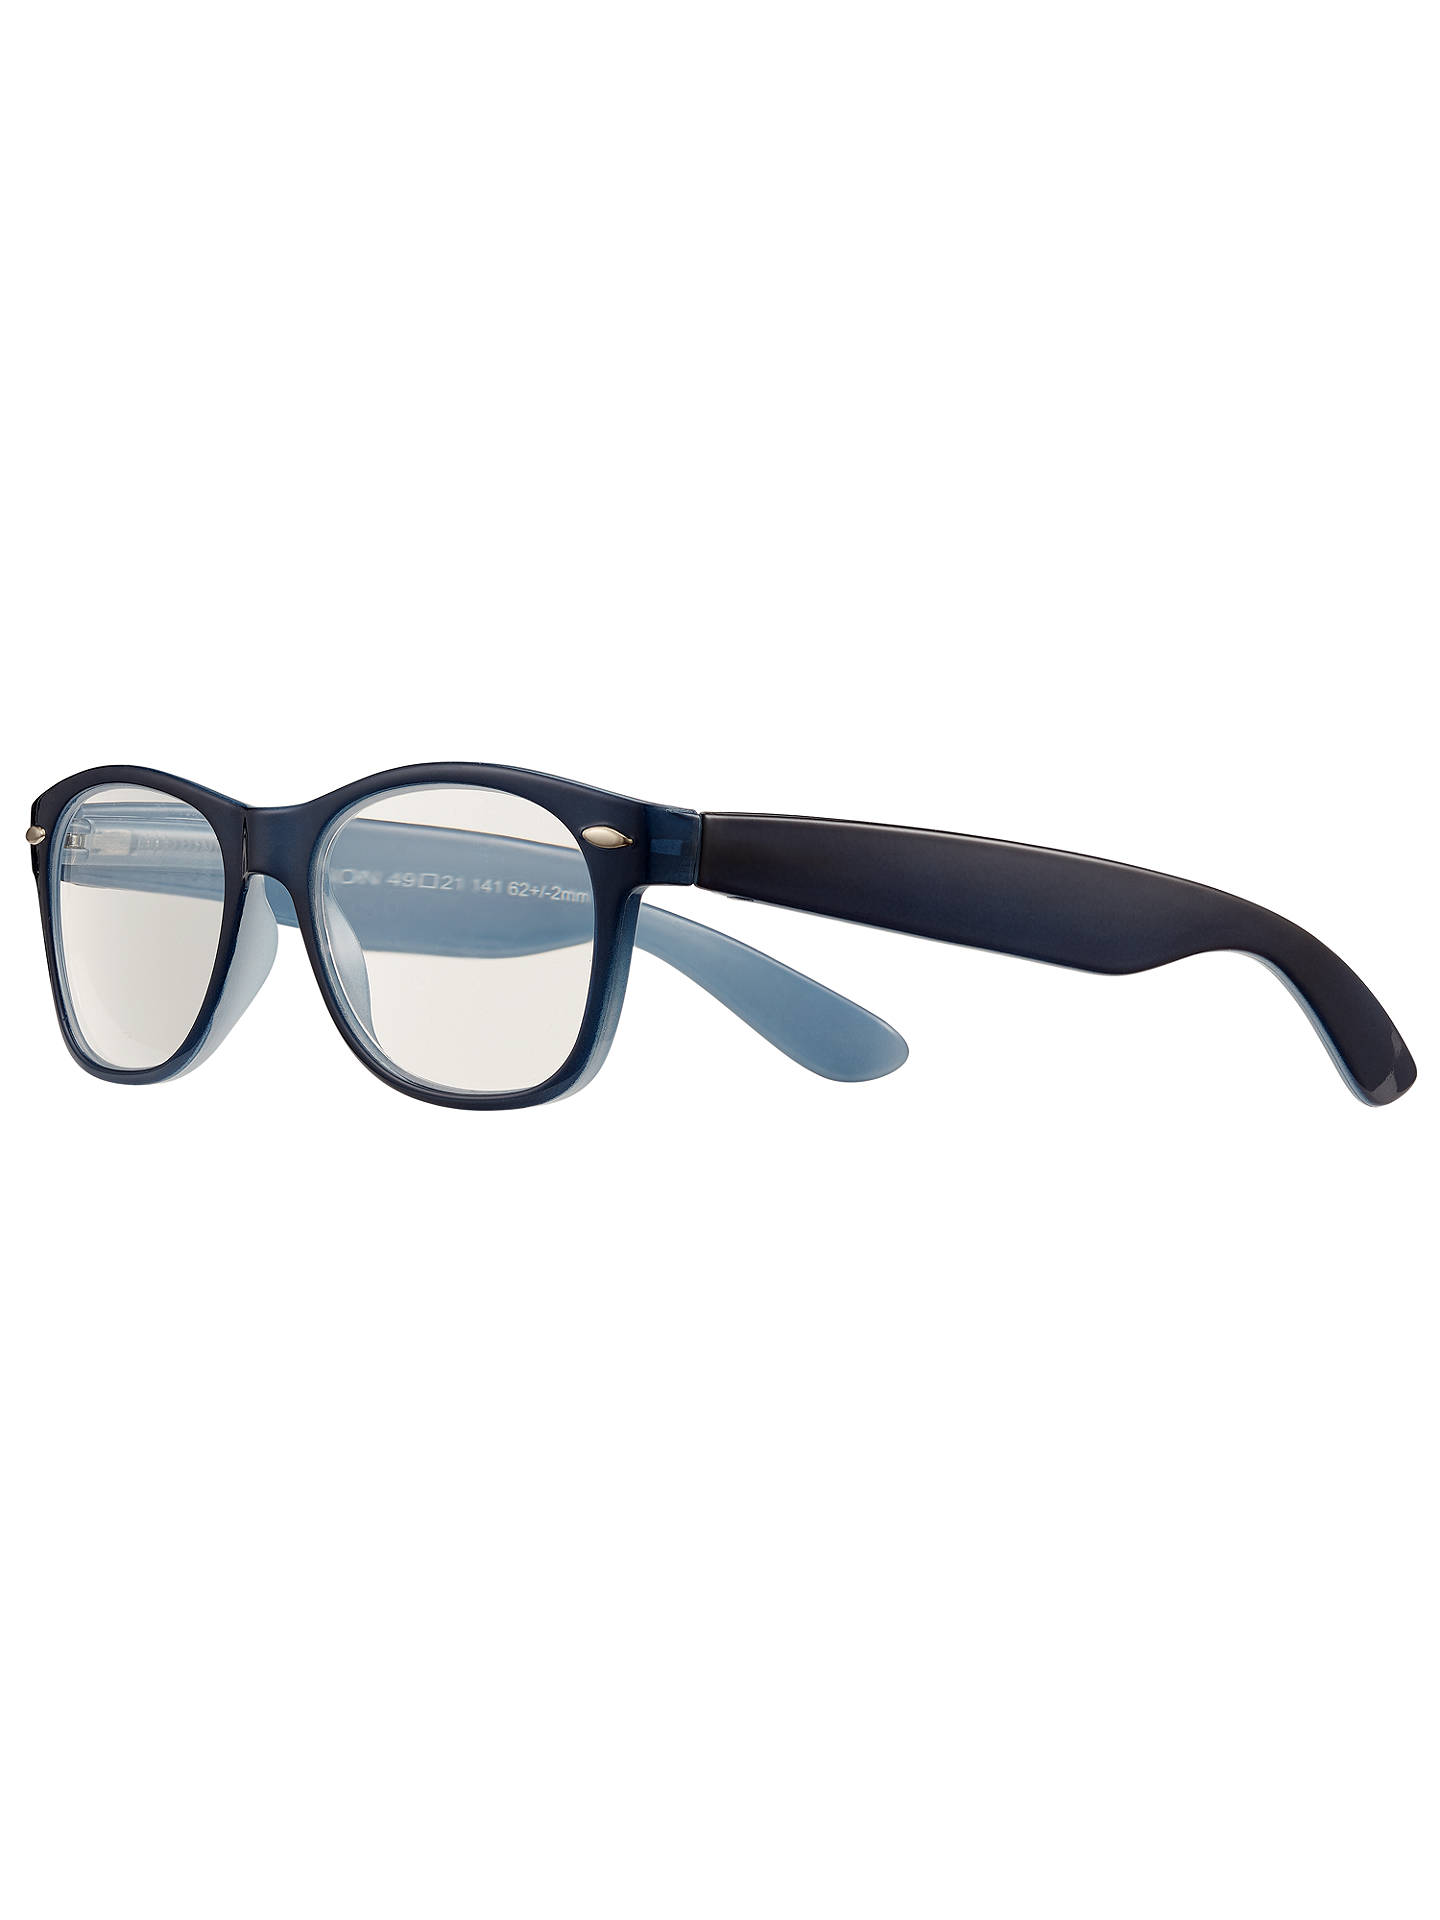 700dc404a838 Buy Magnif Eyes Ready Readers Jackson Glasses